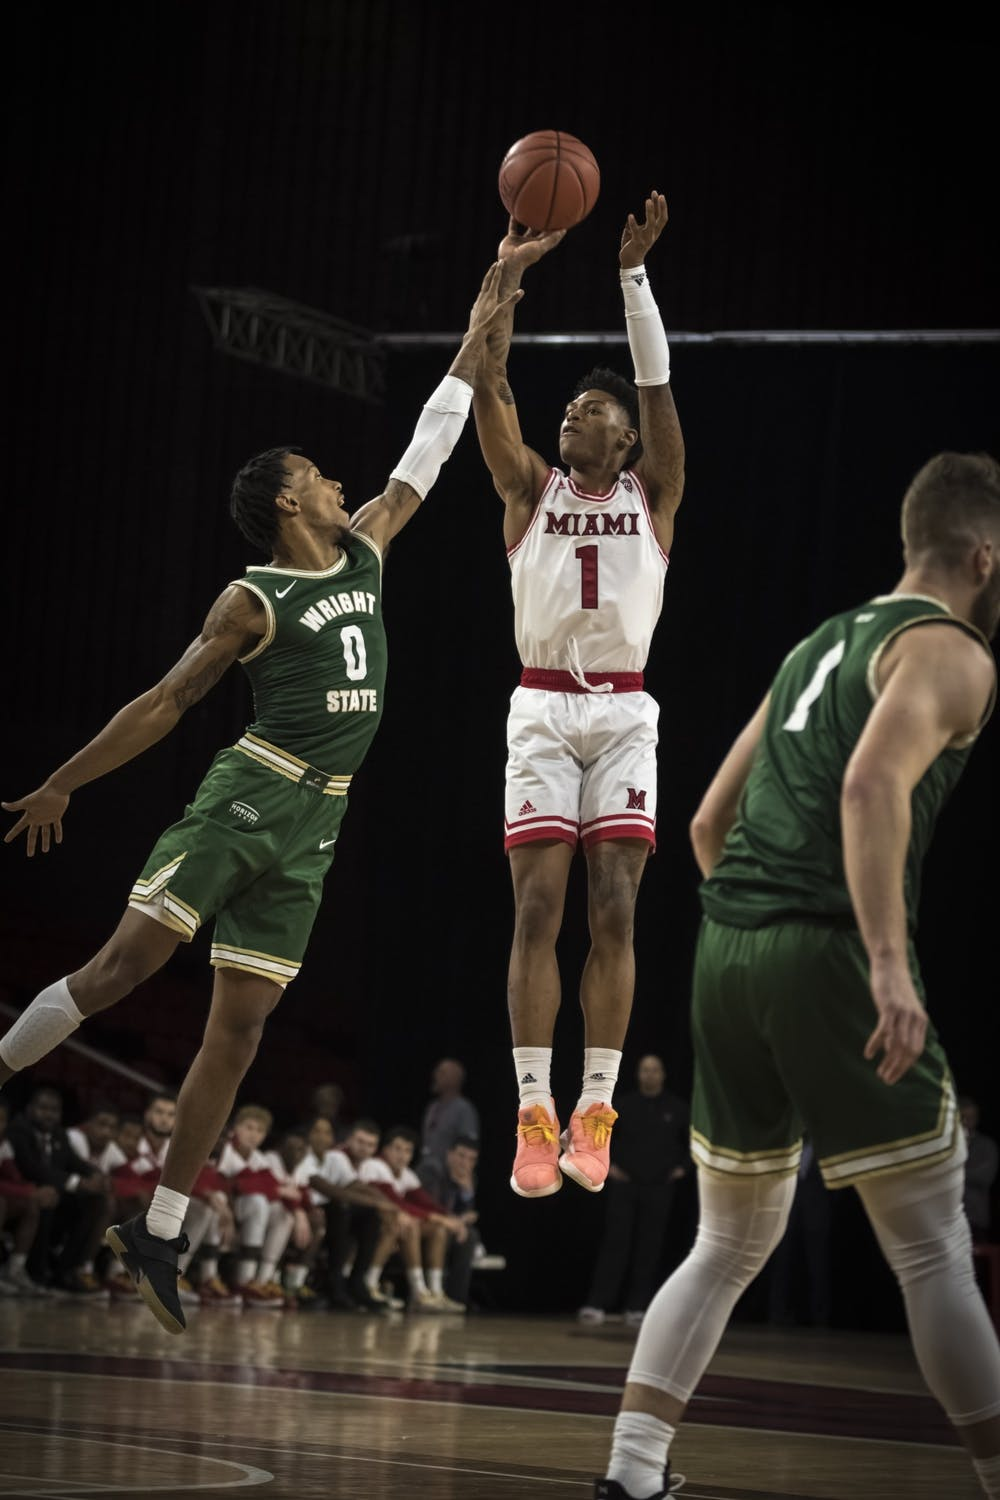 <p>Junior guard Nike Sibande shoots a jumper against Wright State on Nov. 9, 2019, at Millett Hall. Miami lost the game, 88-81, but Sibande scored 24 points.</p>